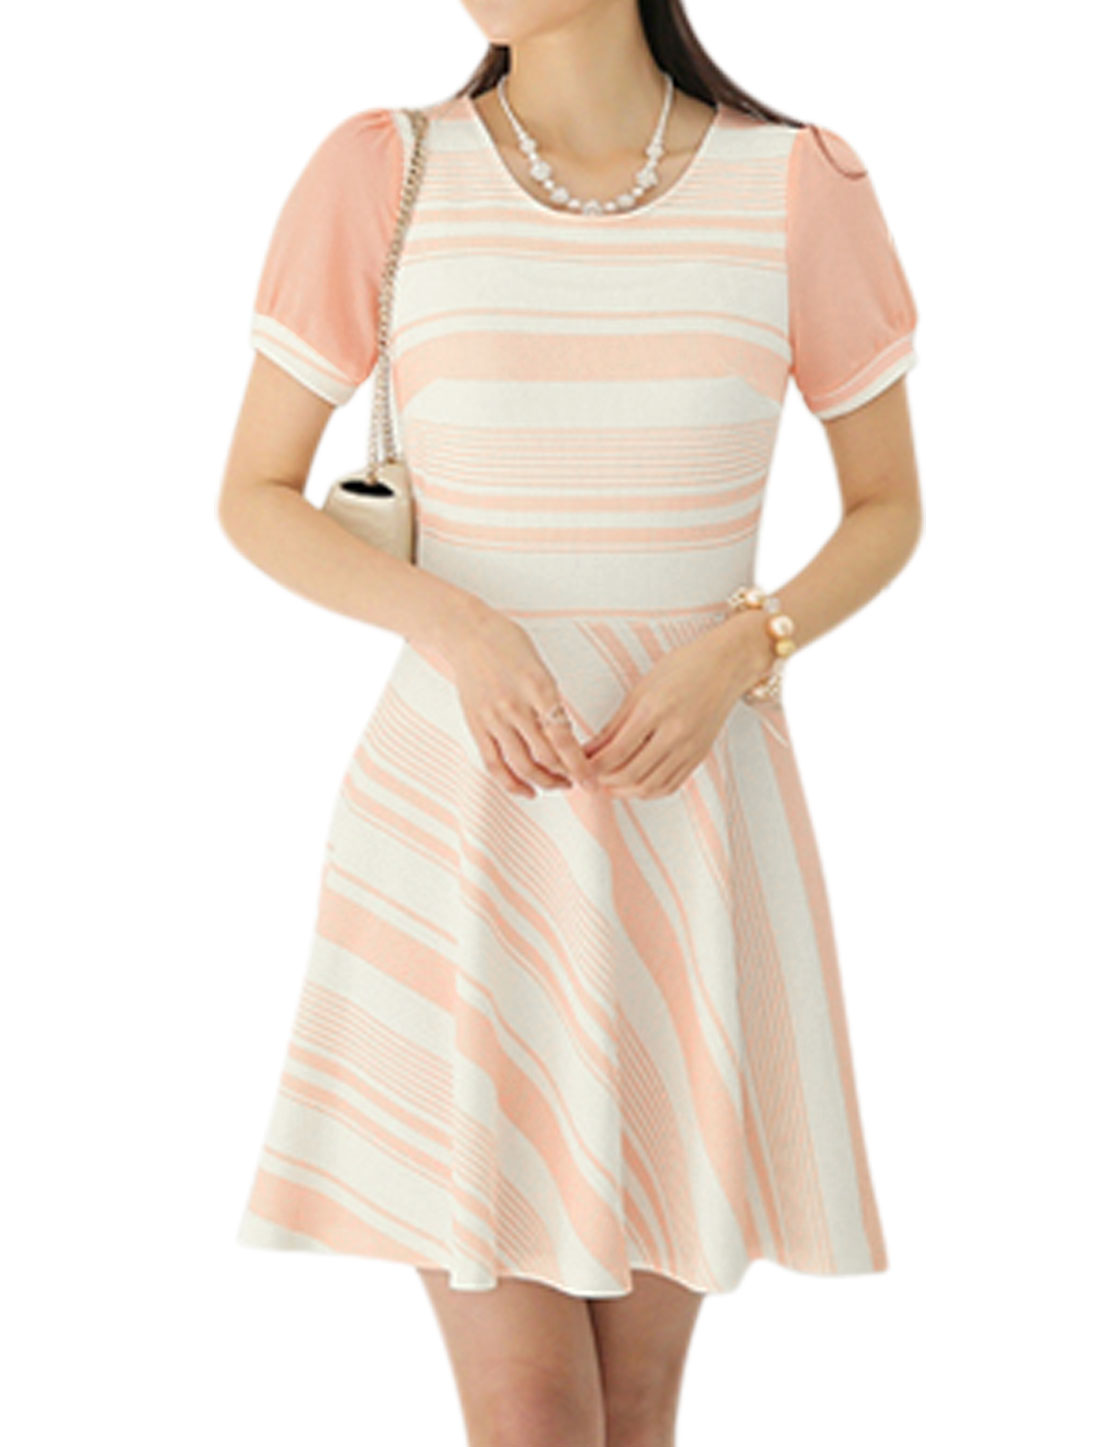 Women Short Sleeve Stripes Texture Casual Summer Dresses Pale Pink White L